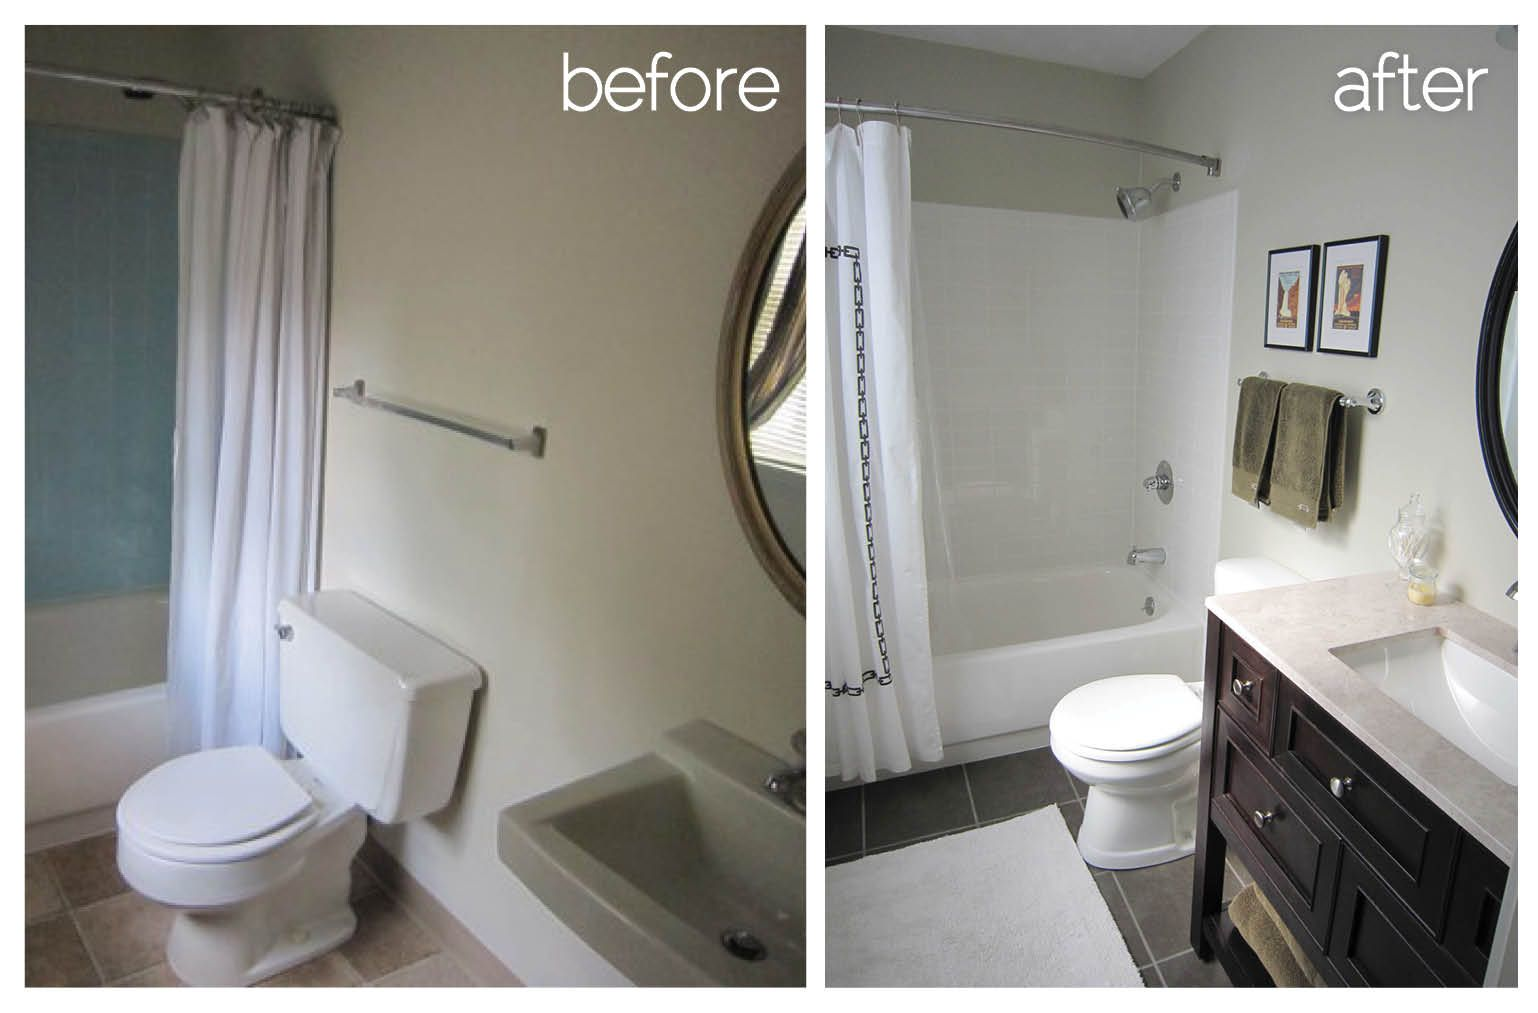 Economical Bathroom Remodel 1000 Images About Bathroom Remodel On Budget Su Pinterest